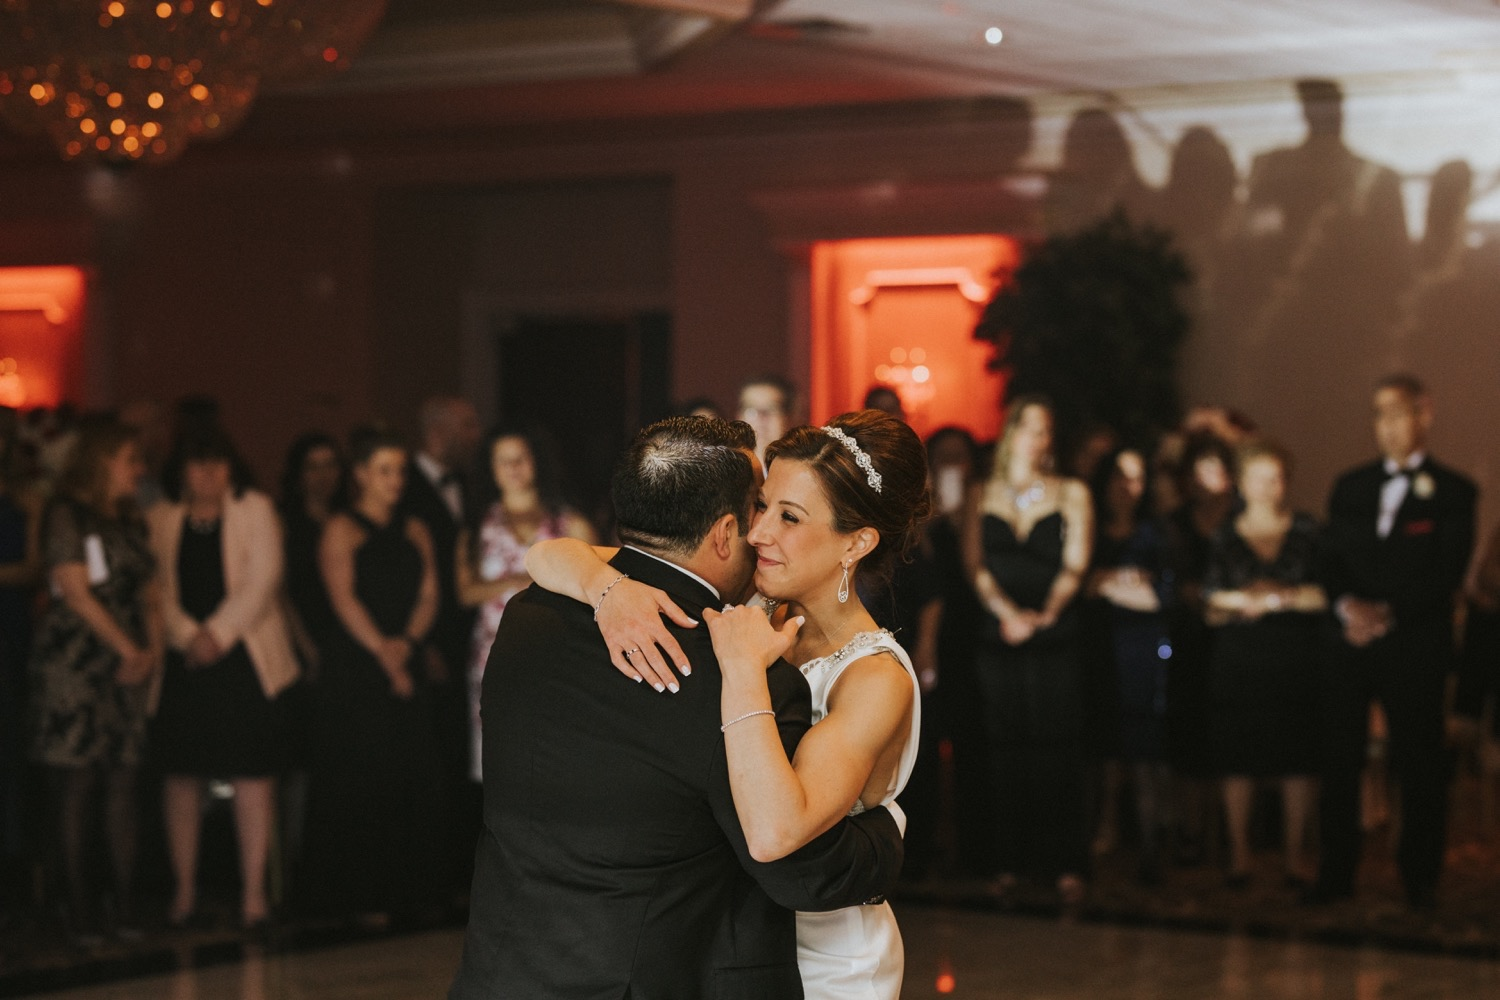 Hudson Valley Wedding Photographer, New York Wedding Photographer, Villa Barone Wedding, Westchester Wedding, Wedding Reception